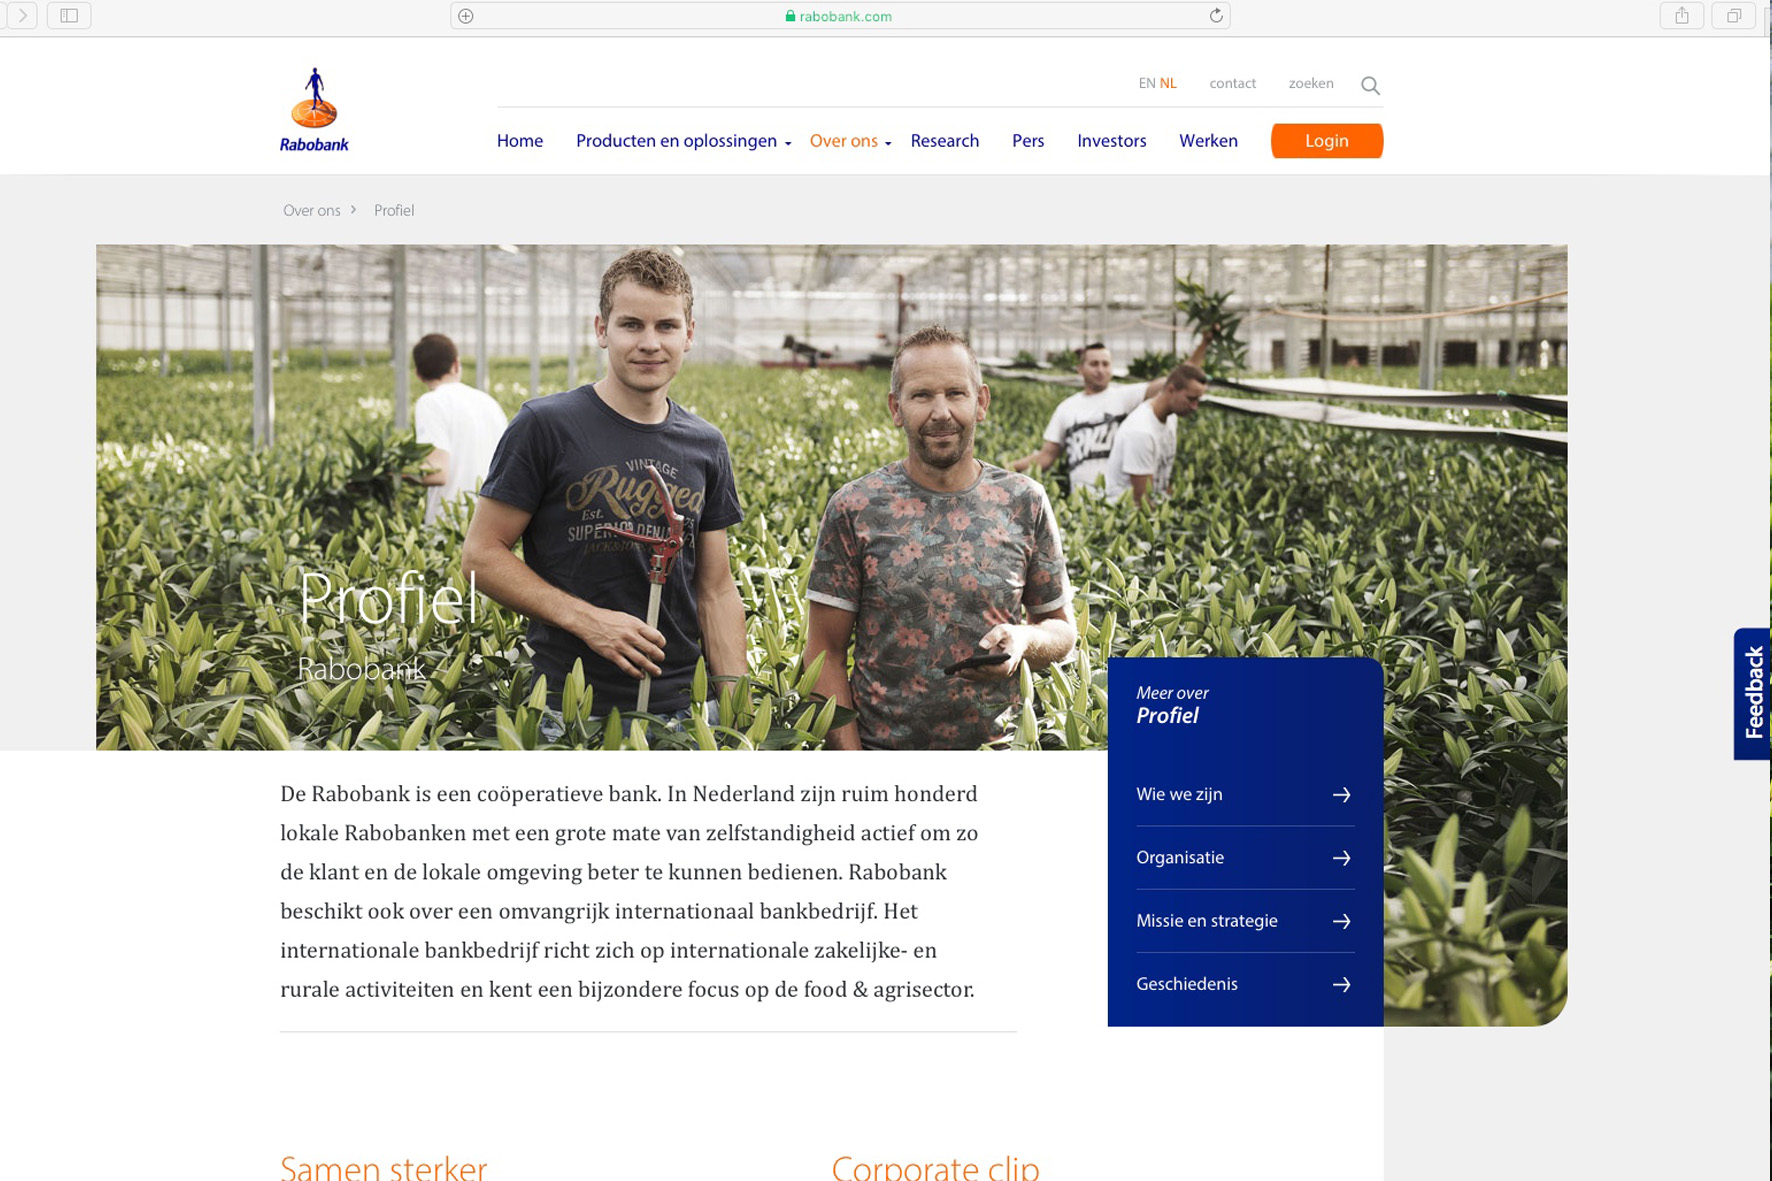 Rabobank, corporate campagne>Growing A Better World Togeher>december 2019